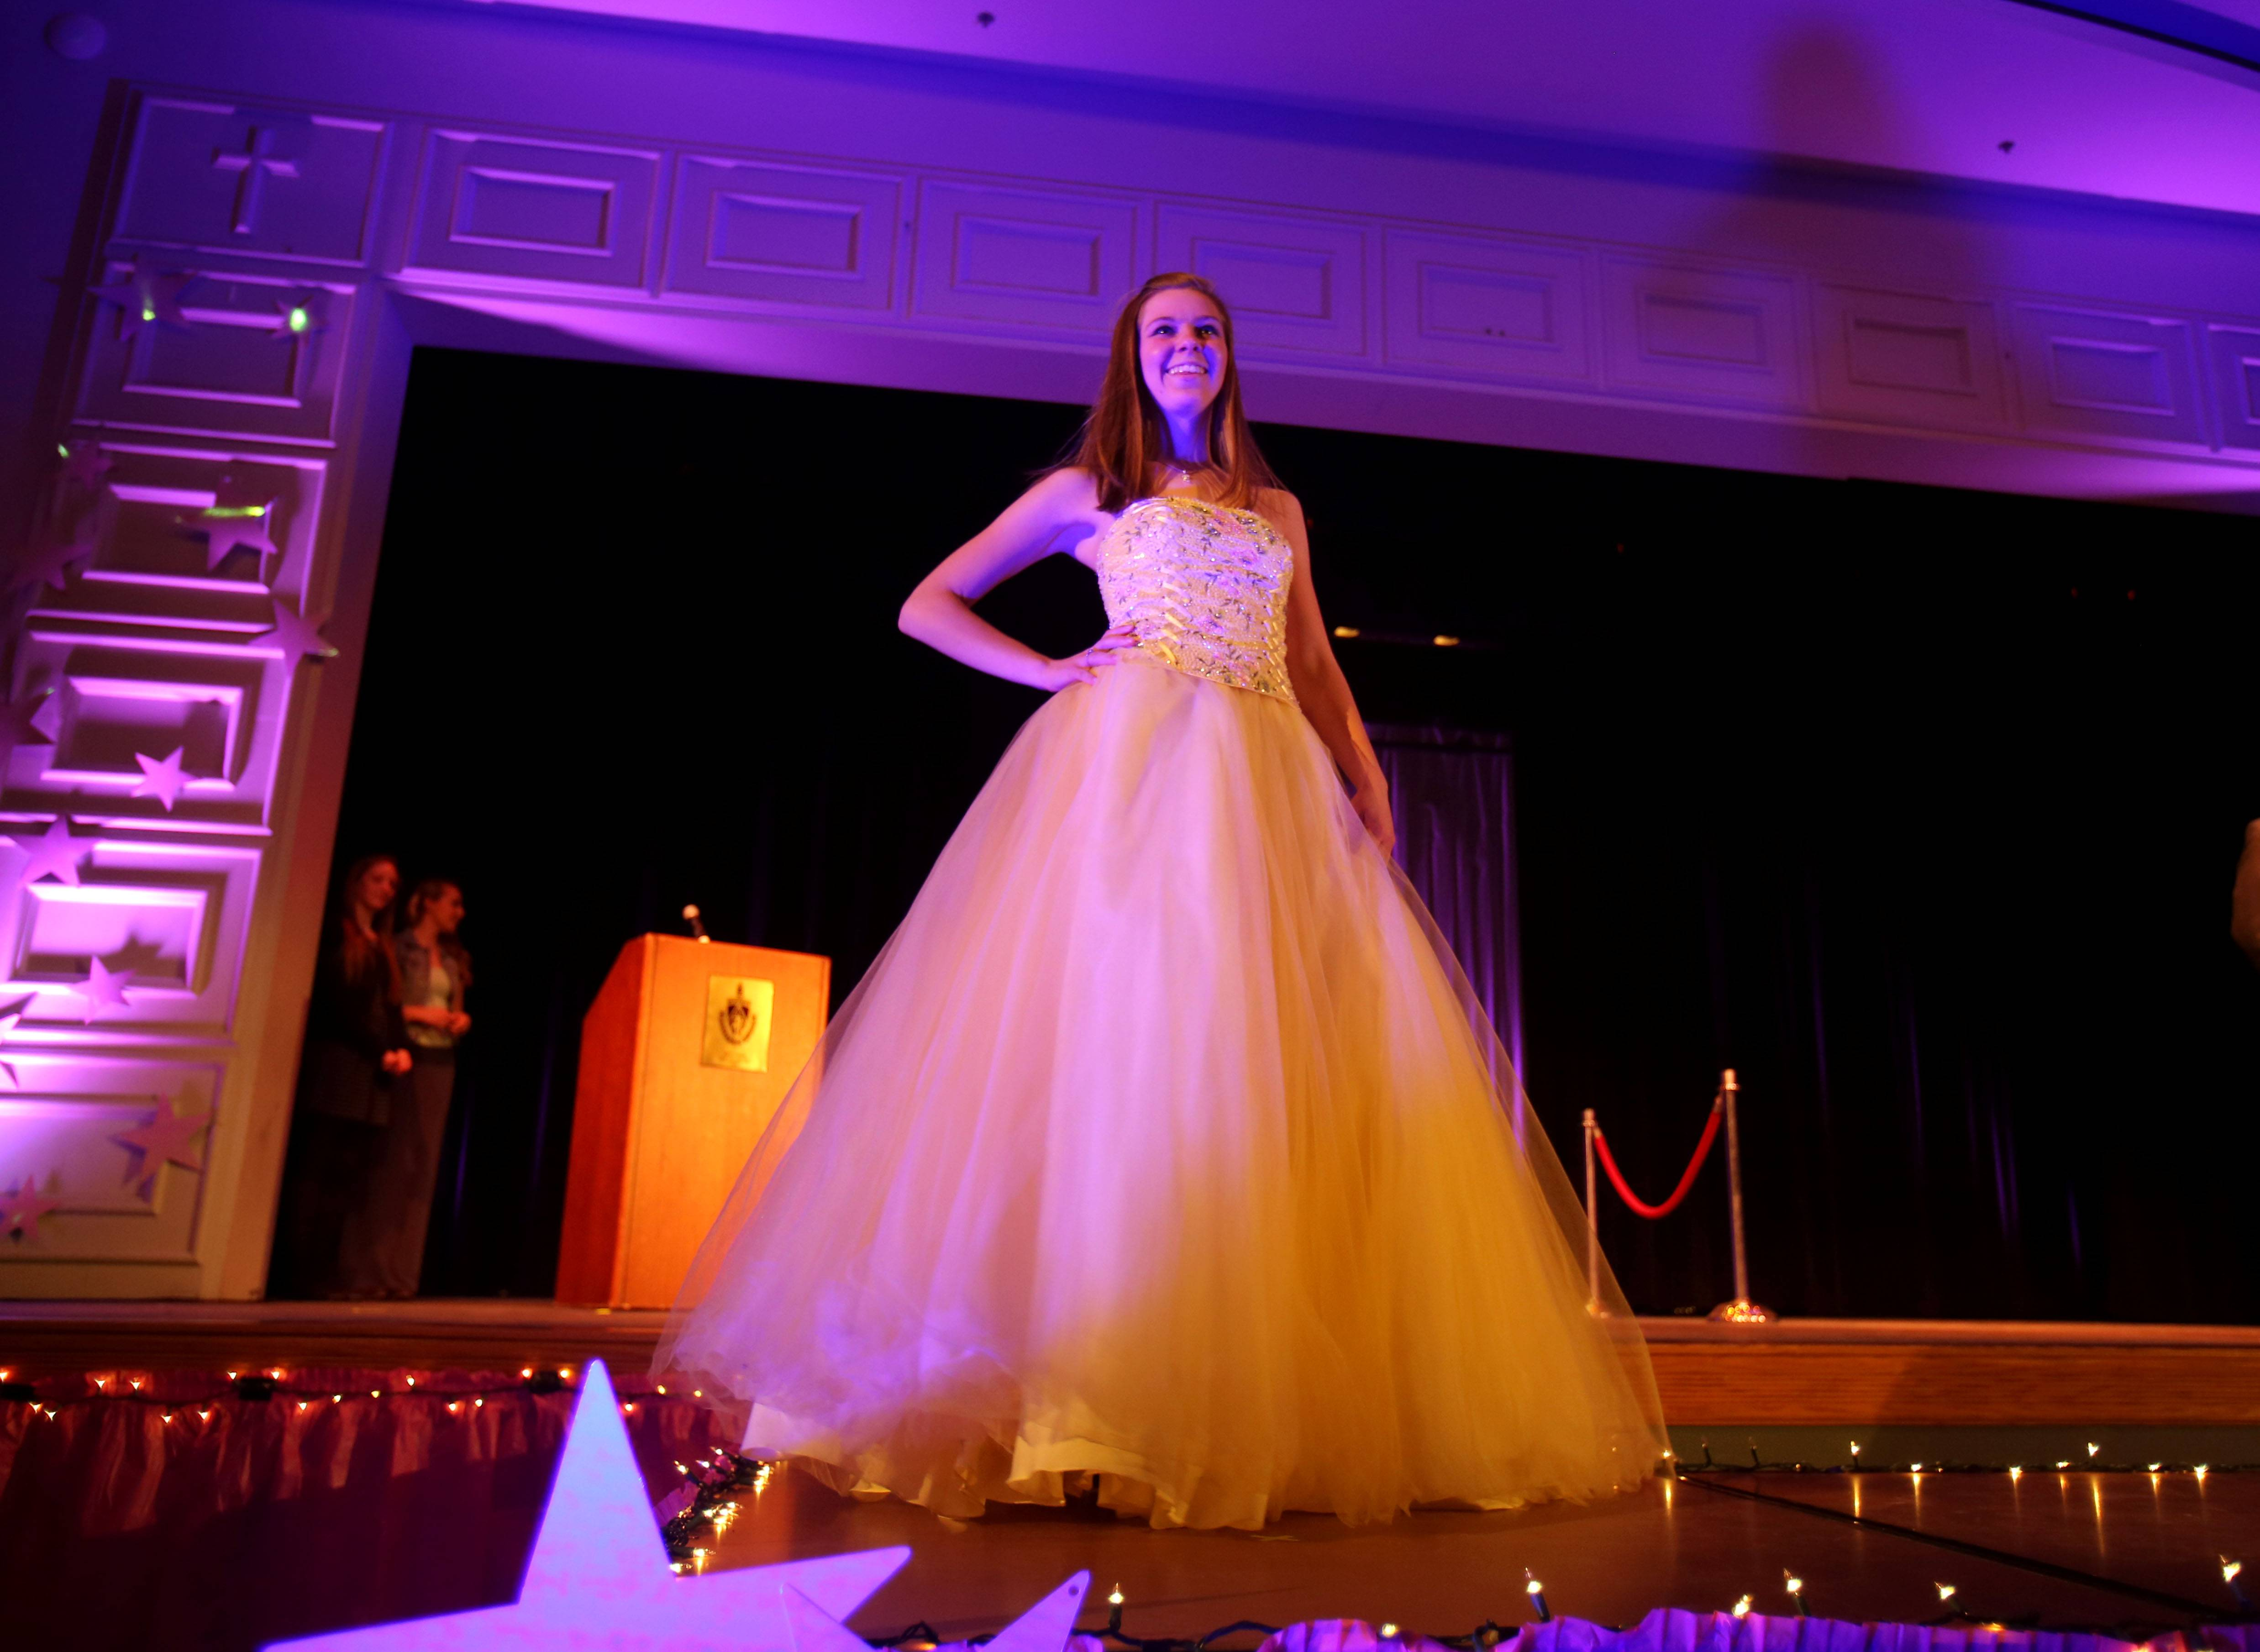 Rosary High School senior Emily Schneider models a prom dress Sunday during the 4th annual Rosary National Honor Society dress sale and fashion show in Aurora. The event raises money for scholarships given to incoming freshmen.